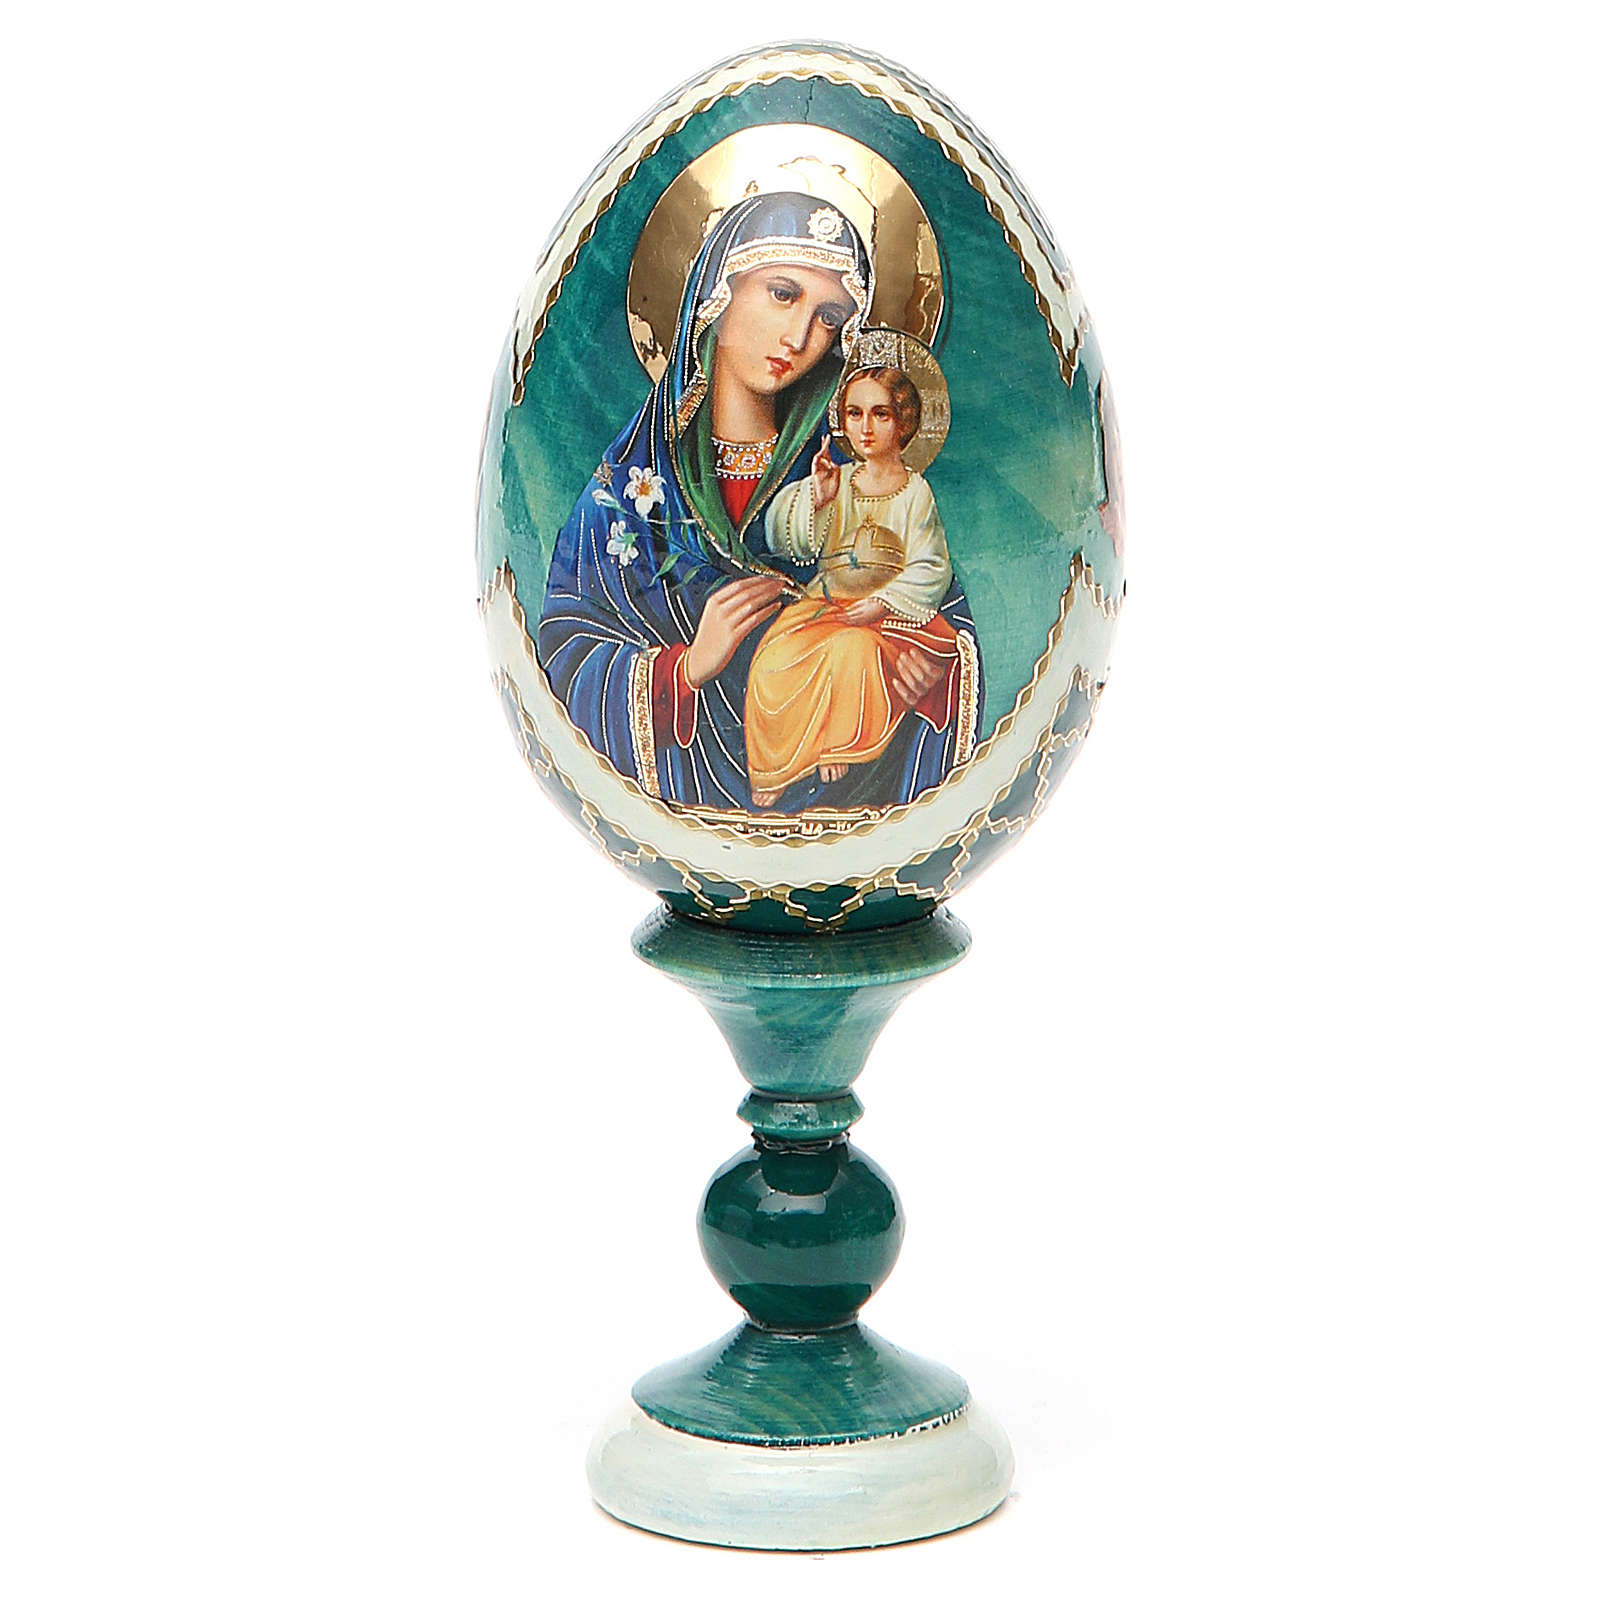 Uovo icona découpage Giglio Bianco h tot. 13 cm stile Fabergé 4